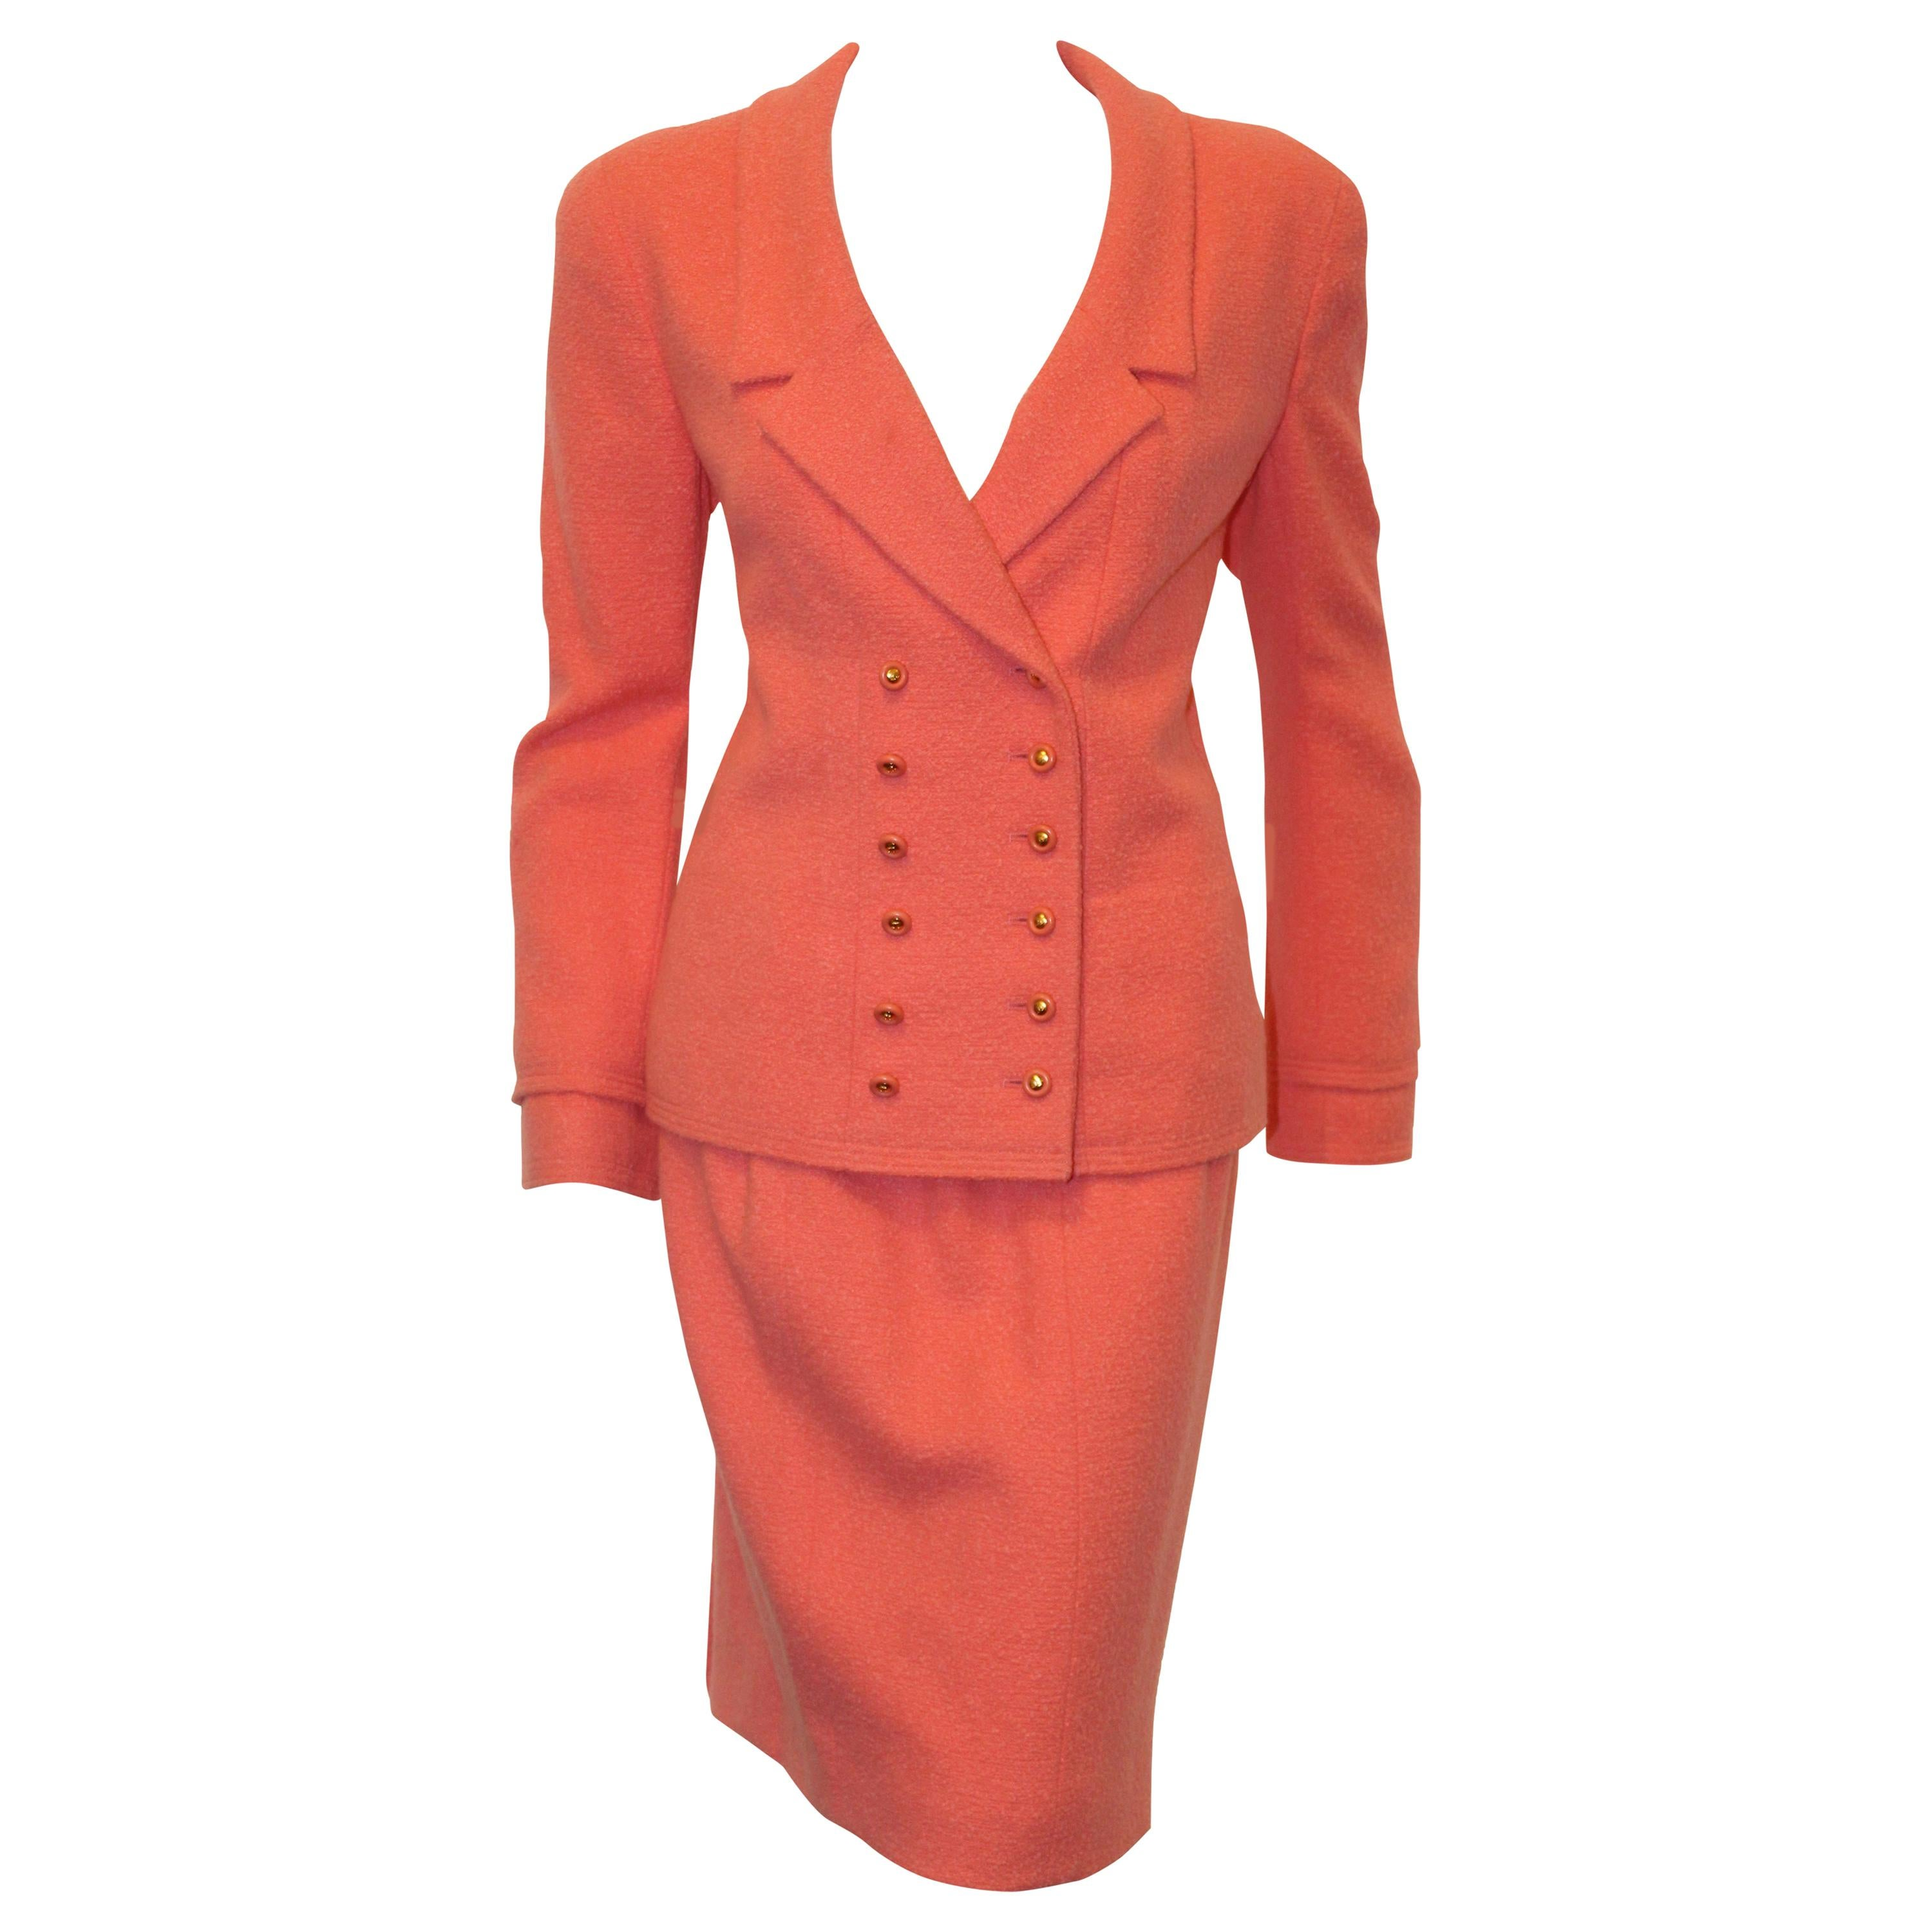 449ae492f Chanel Pink Salmon Double Breasted Notch Collar 96 Cruise Skirt Suit